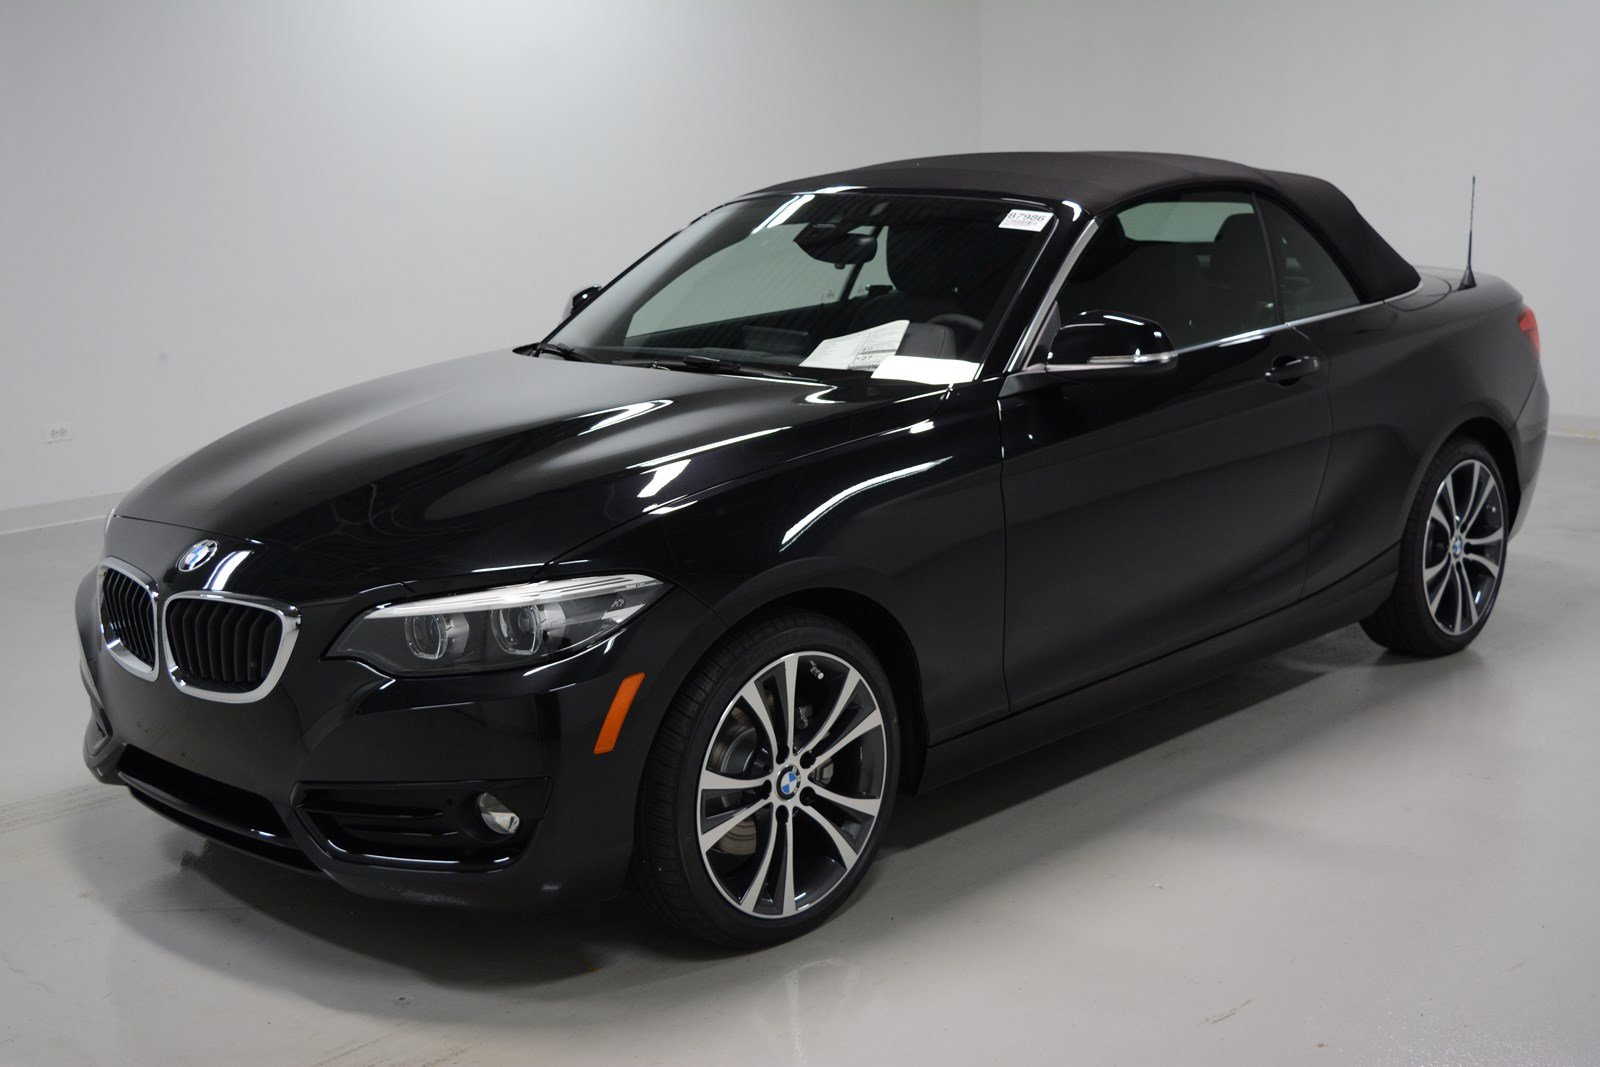 pre owned 2018 bmw 2 series 230i xdrive convertible convertible in elmhurst b7986 elmhurst bmw. Black Bedroom Furniture Sets. Home Design Ideas